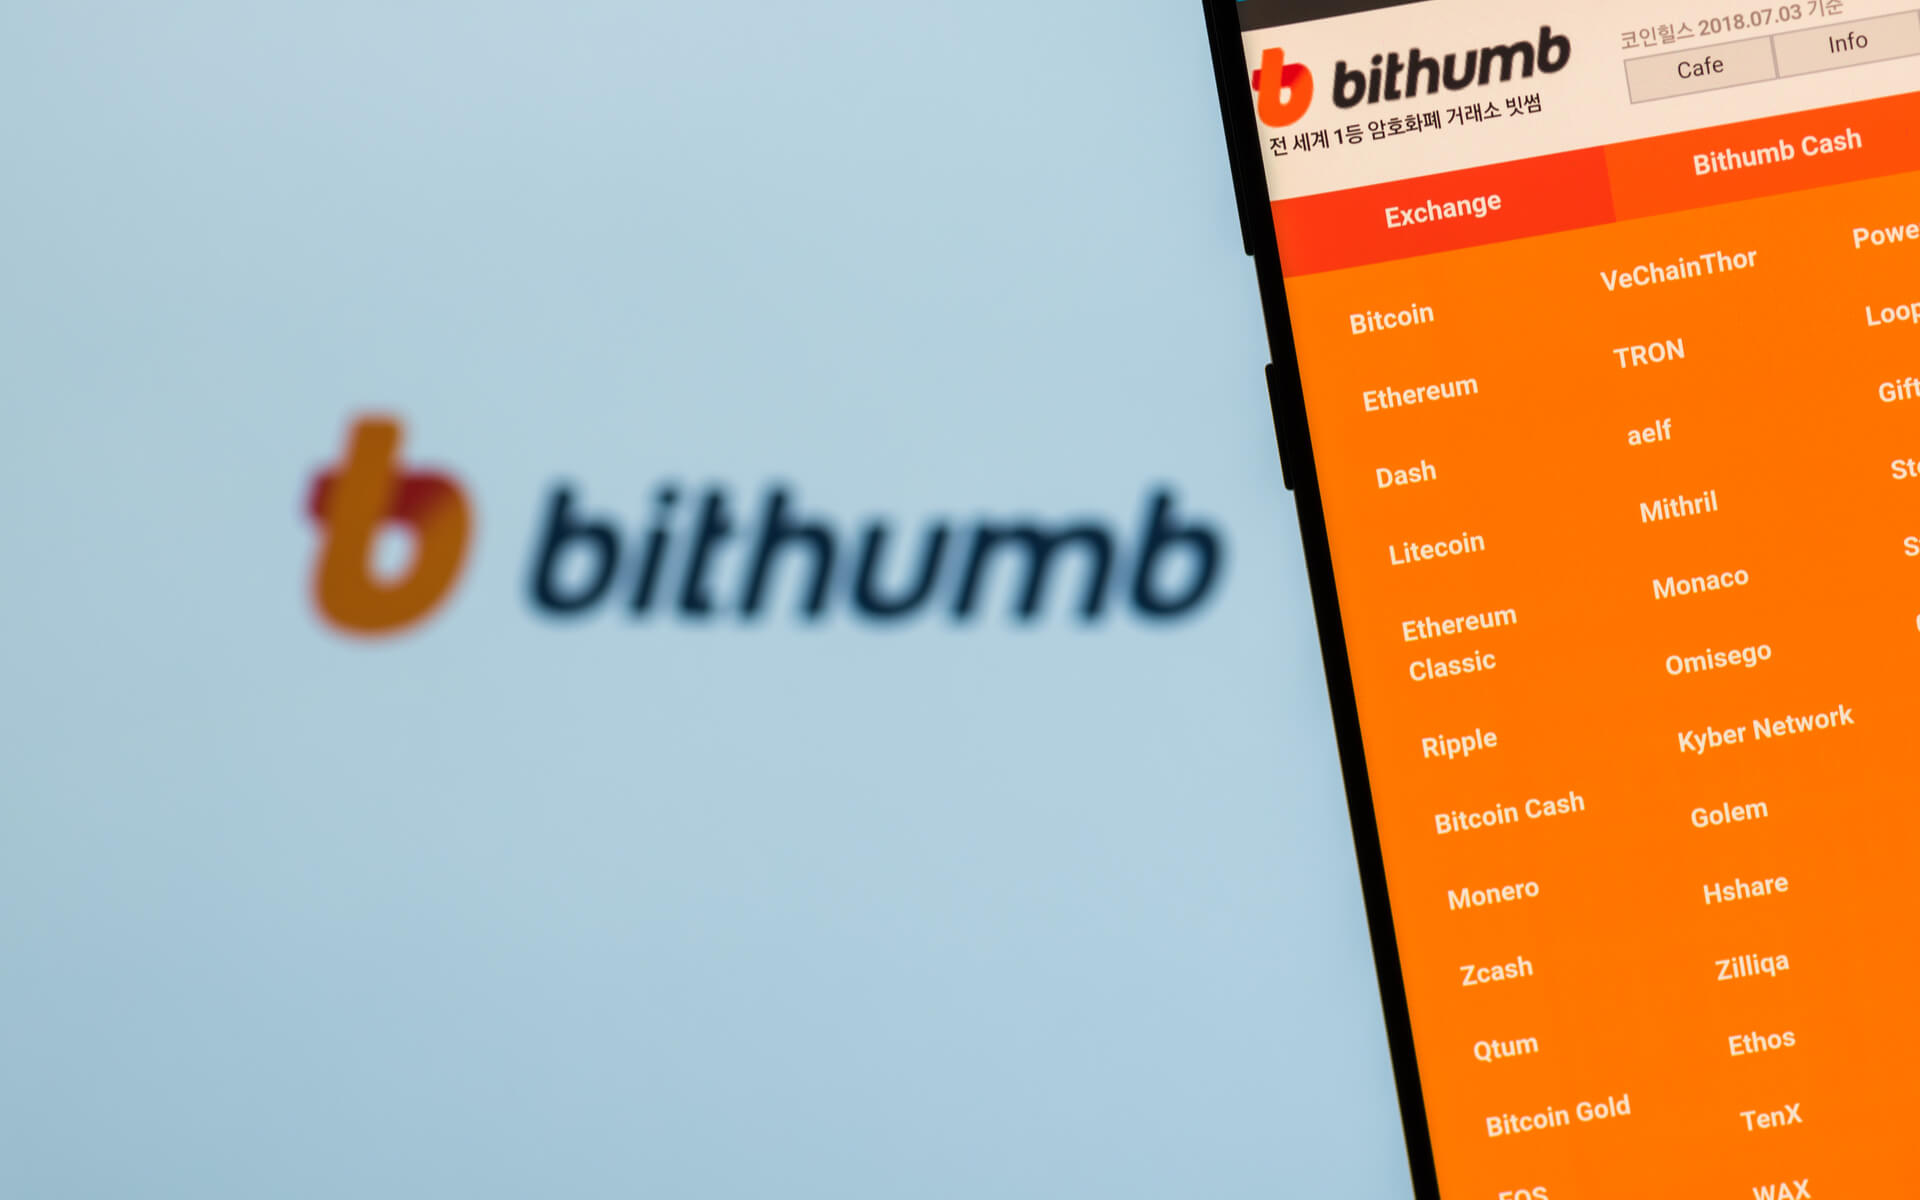 Bithumb | Lay off | Crypto Winter | Issues